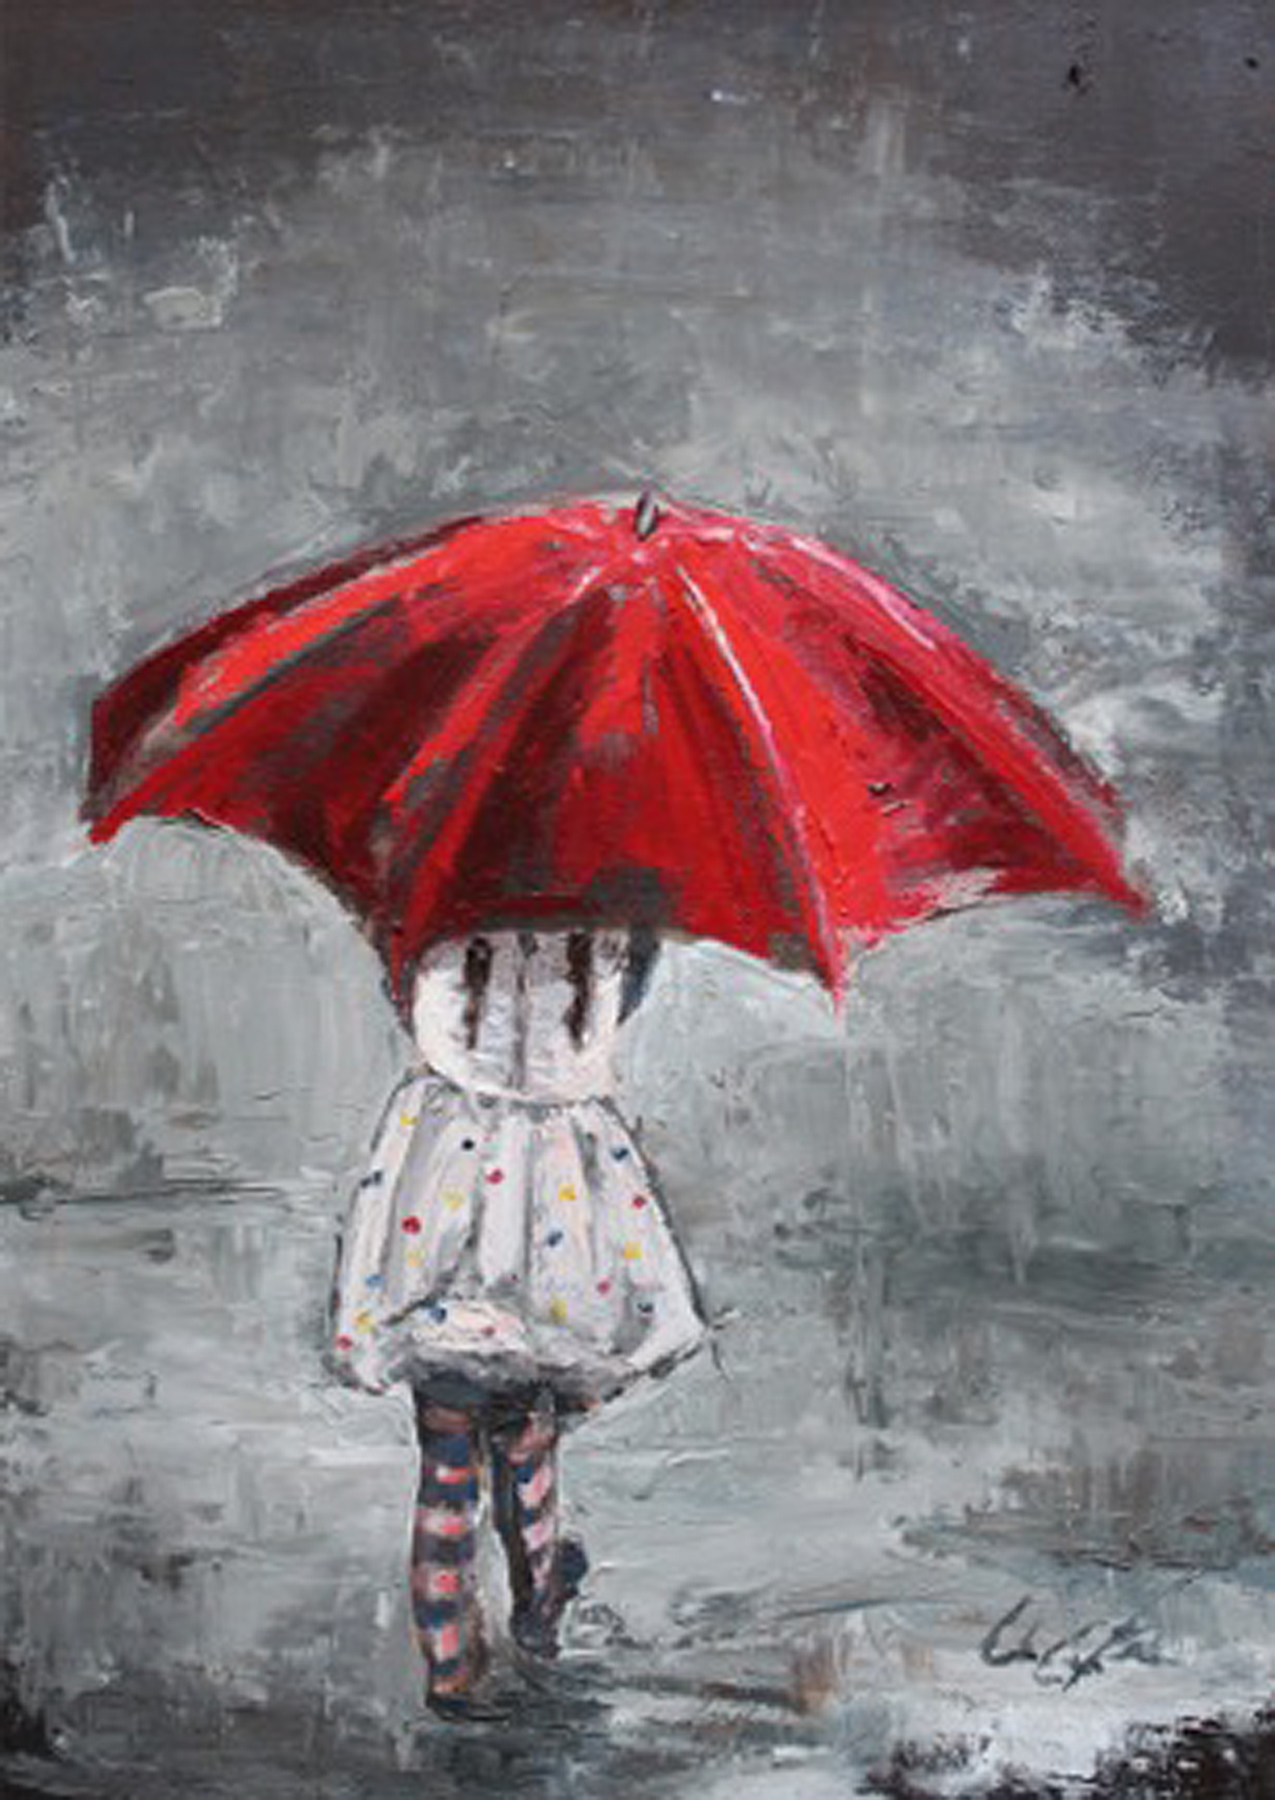 Gloria Blinn: Walking in Raindrops